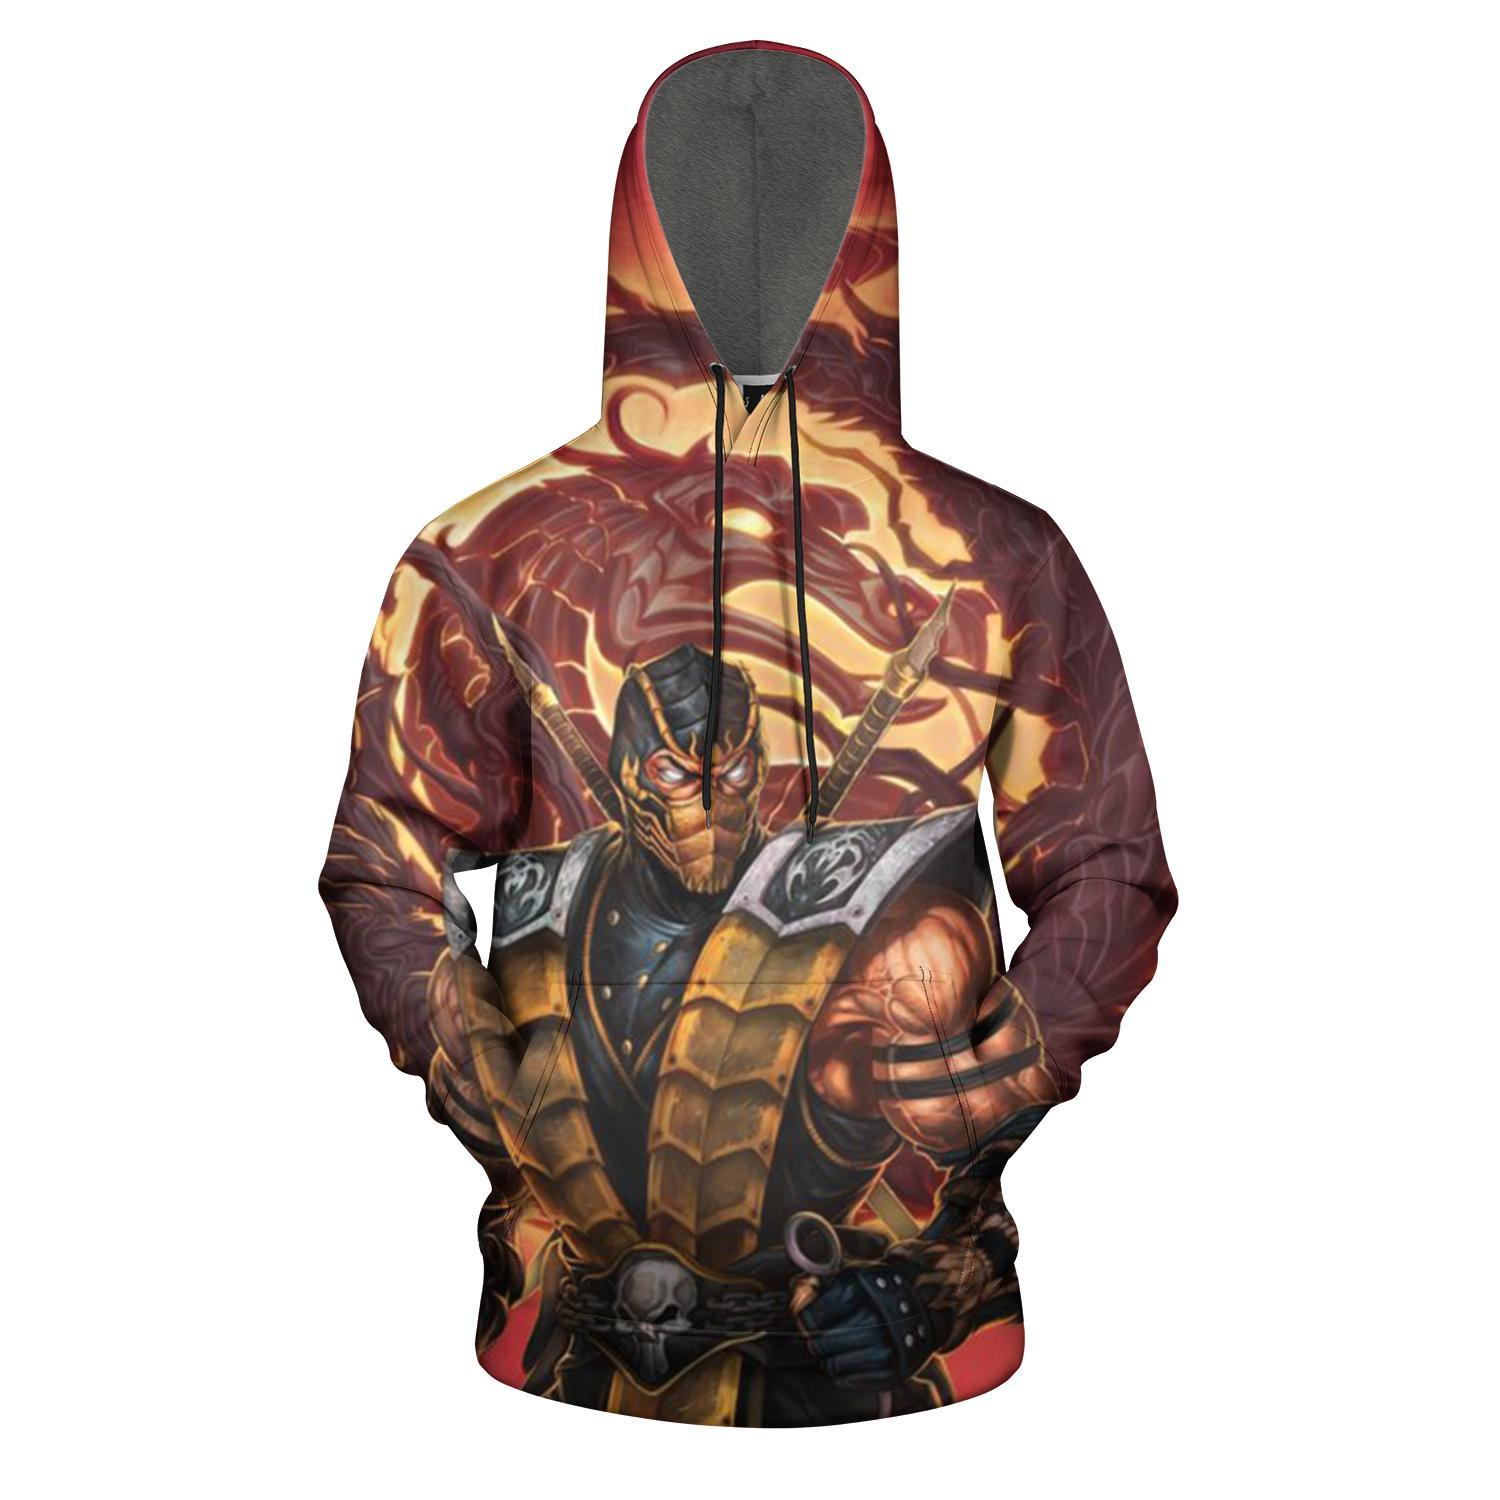 3D Print Mens Hooded Sweatshirts Scorpion Print Drawstring Pullover Hoodies Pockets